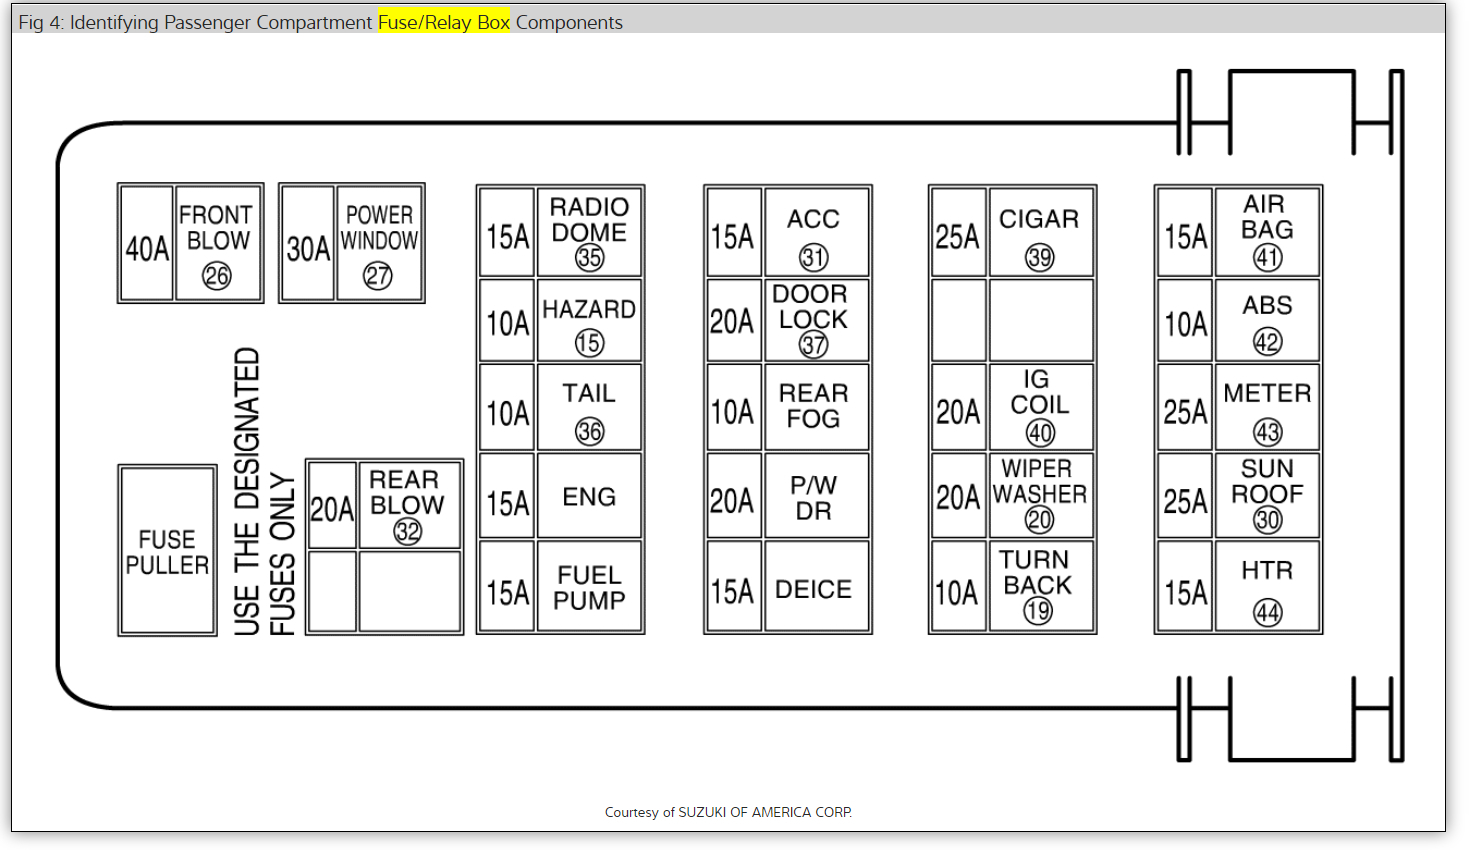 hight resolution of 2007 suzuki fuse box wiring diagram expert 2007 suzuki sx4 fuse box location 2007 suzuki fuse box